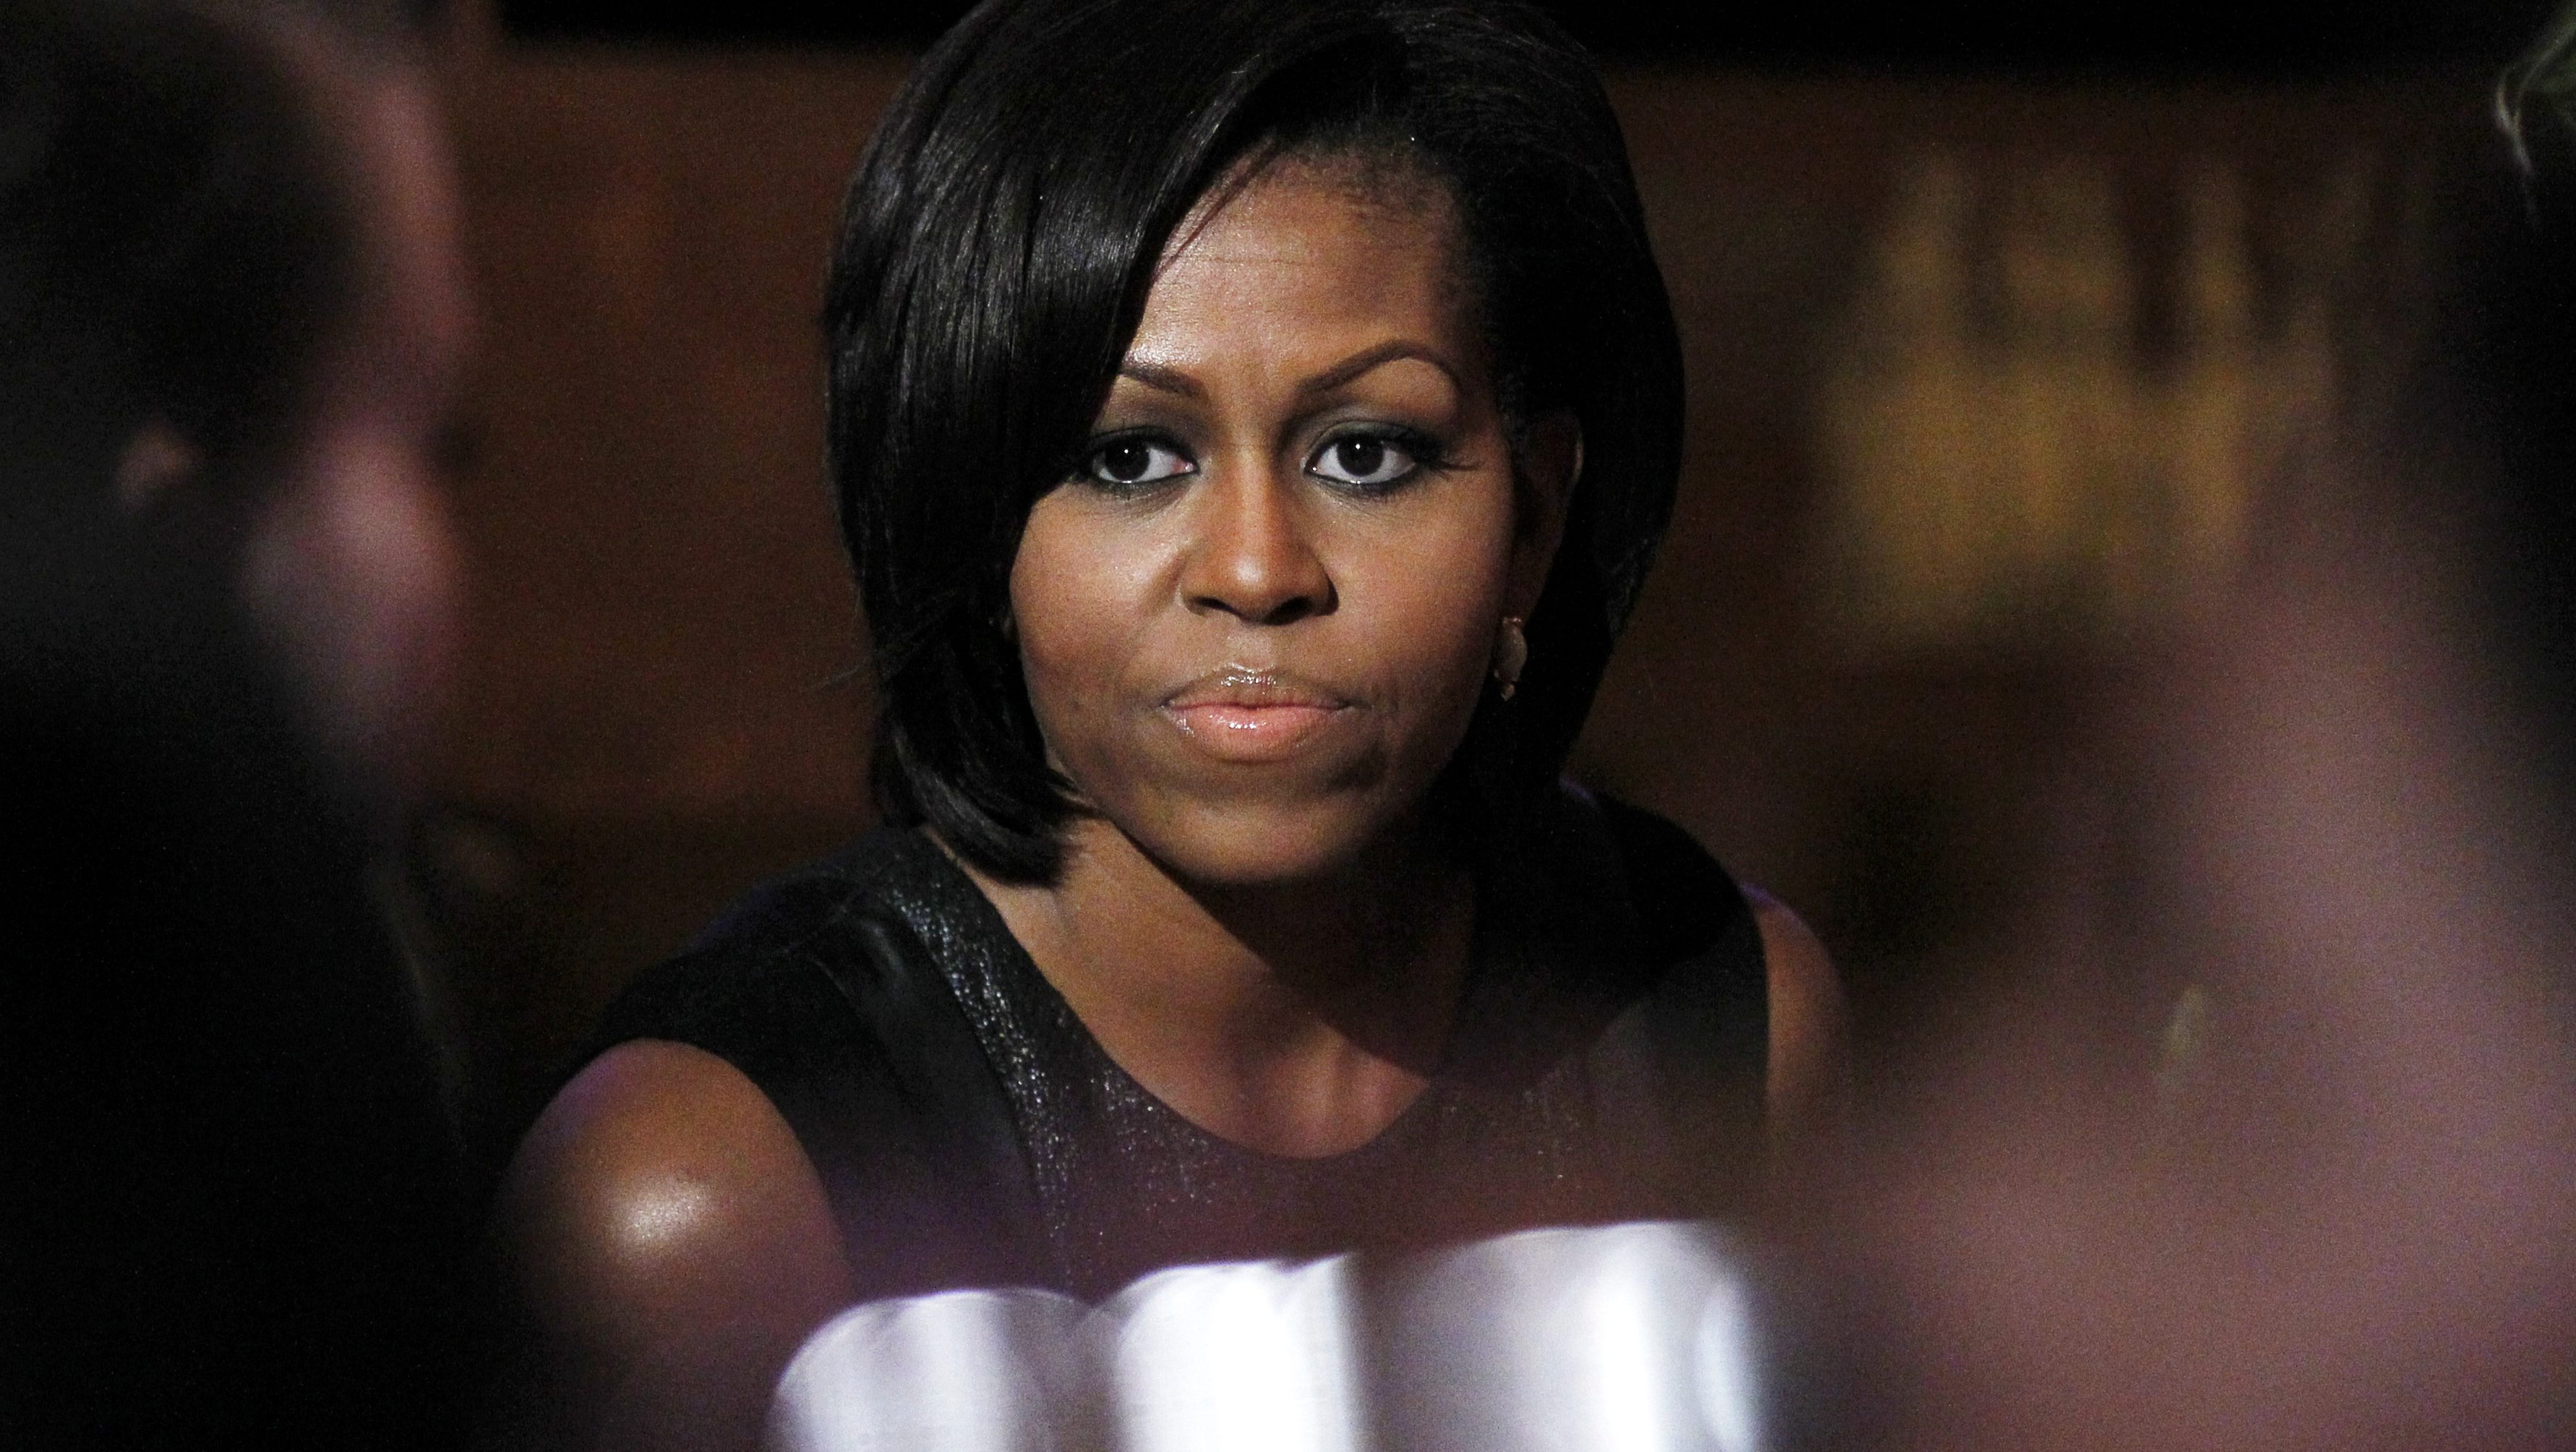 First lady Michelle Obama hosts mentoring event to celebrate Women's History Month in the East Room at the White House in Washington, Wednesday, March 30, 2011. (AP Photo/Manuel Balce Ceneta)